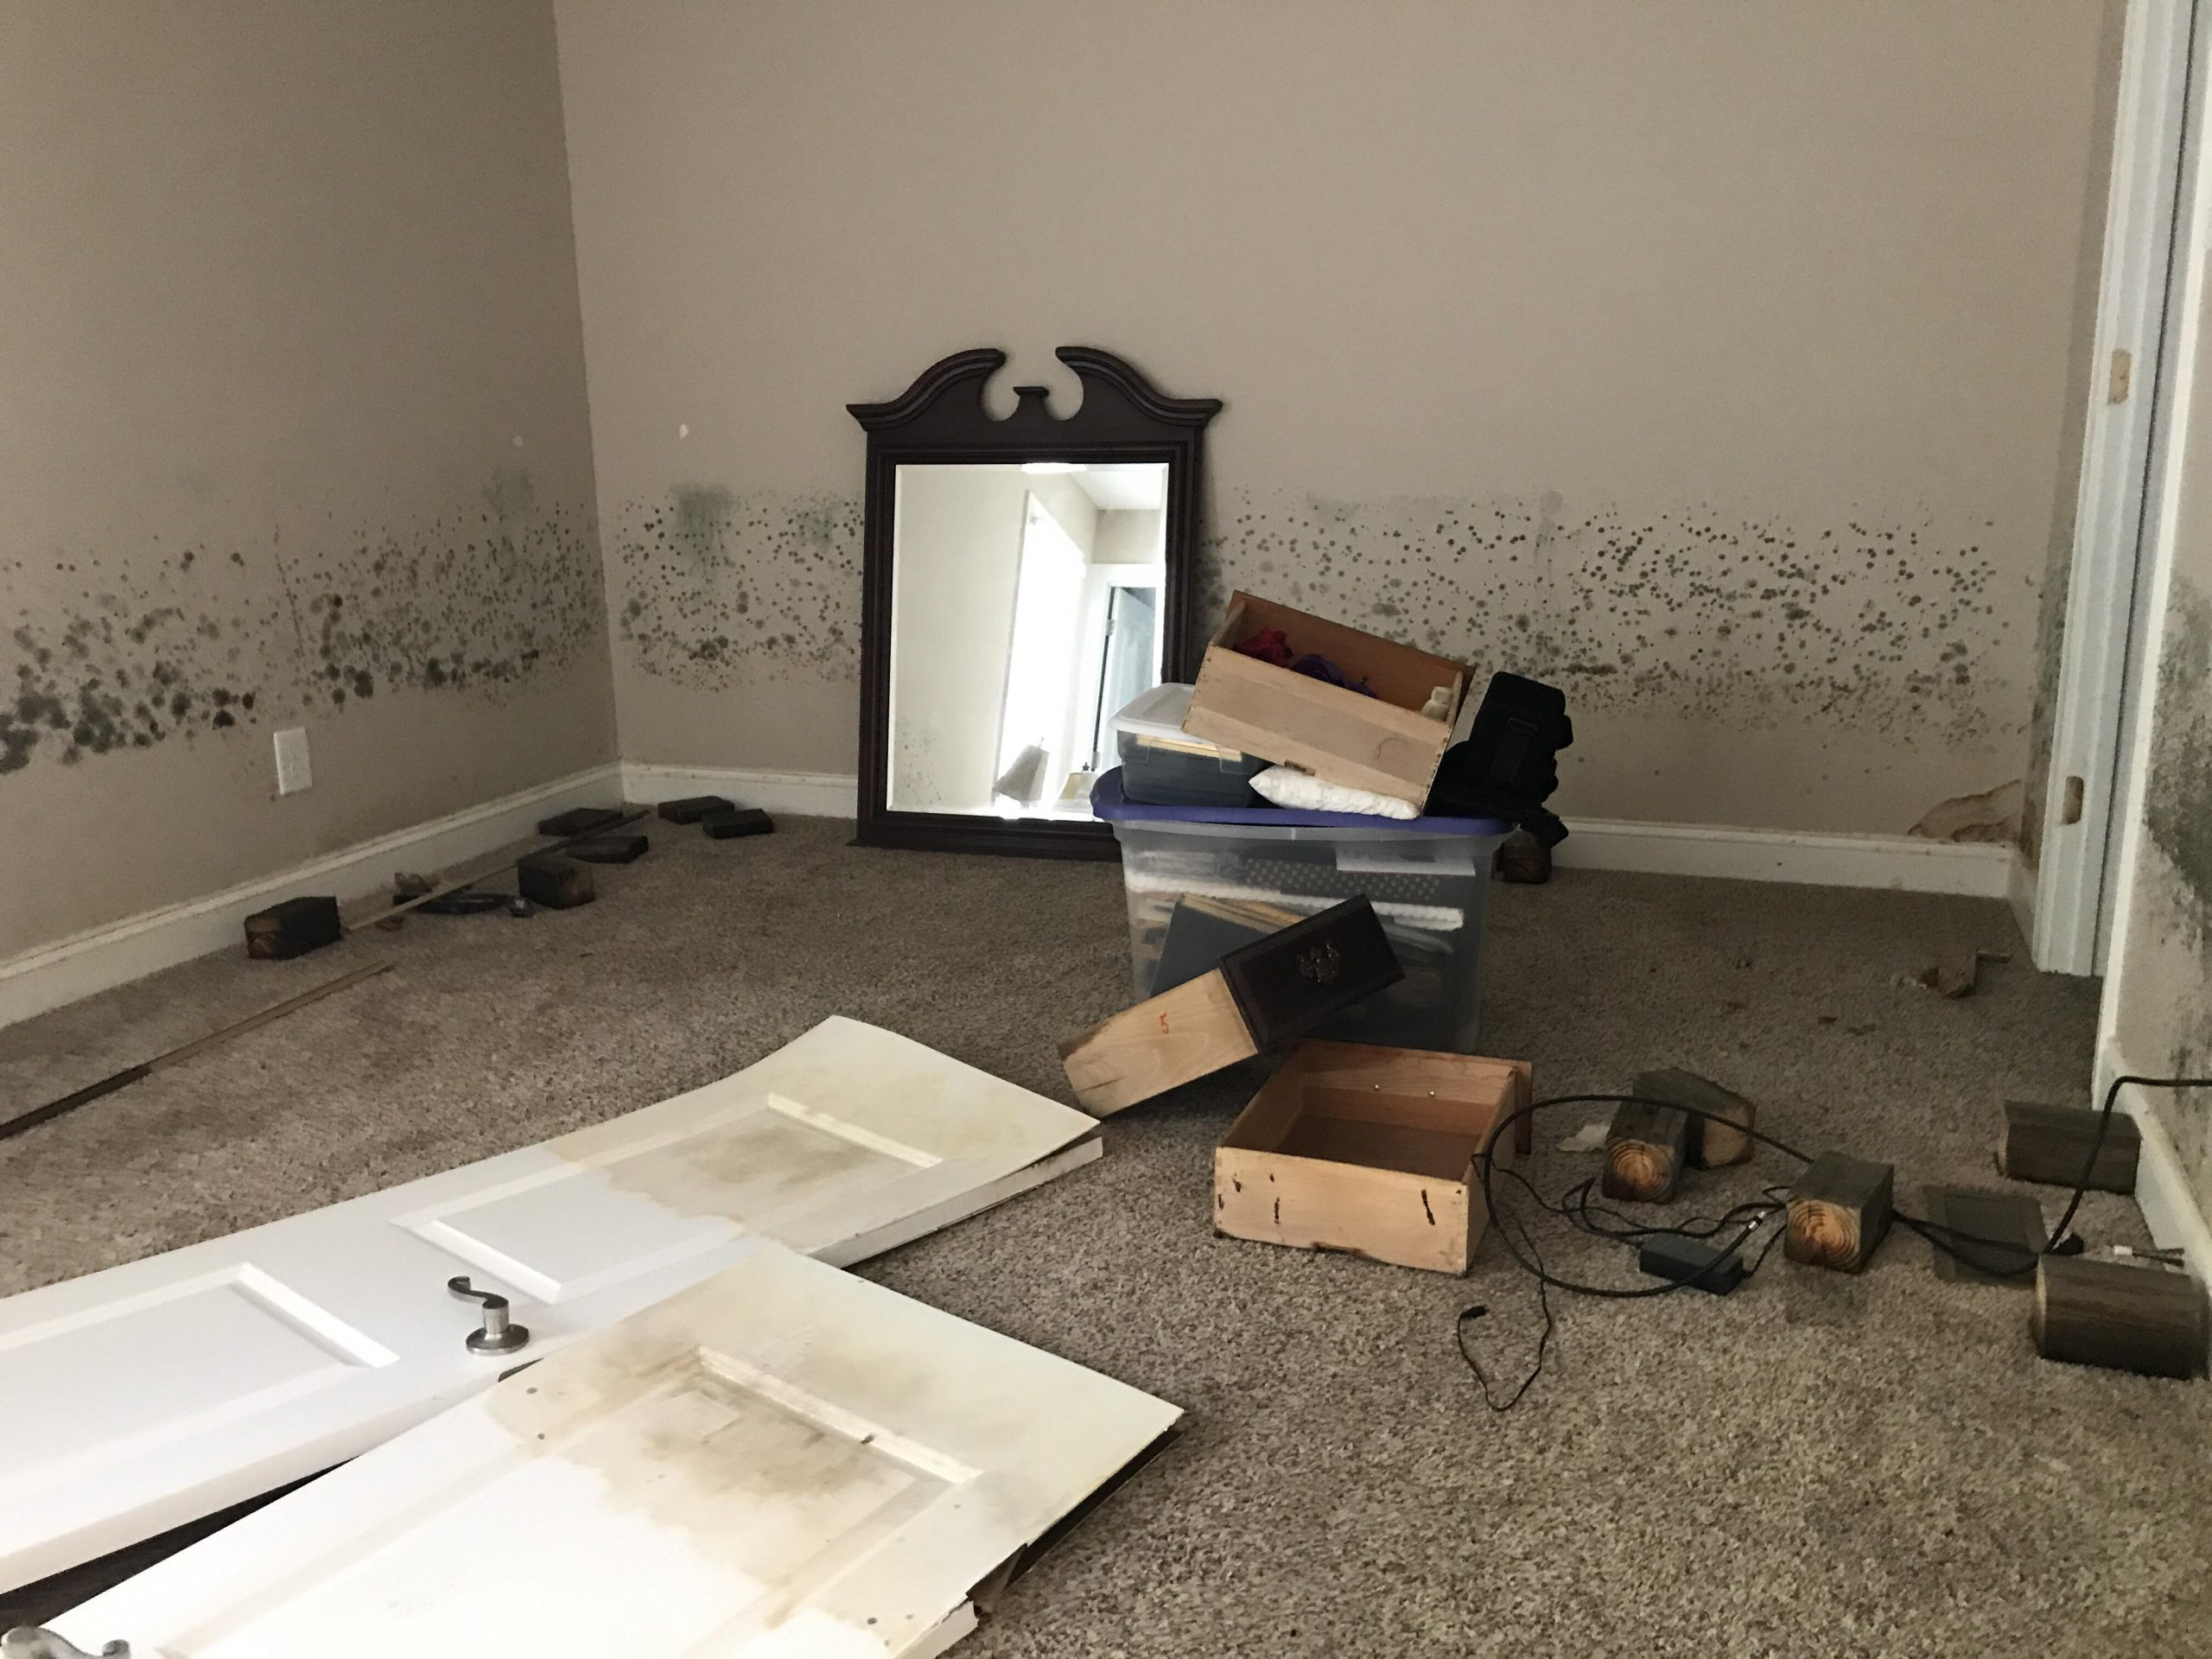 Mold Remediation And Repair South Florida JASD Inc scaled